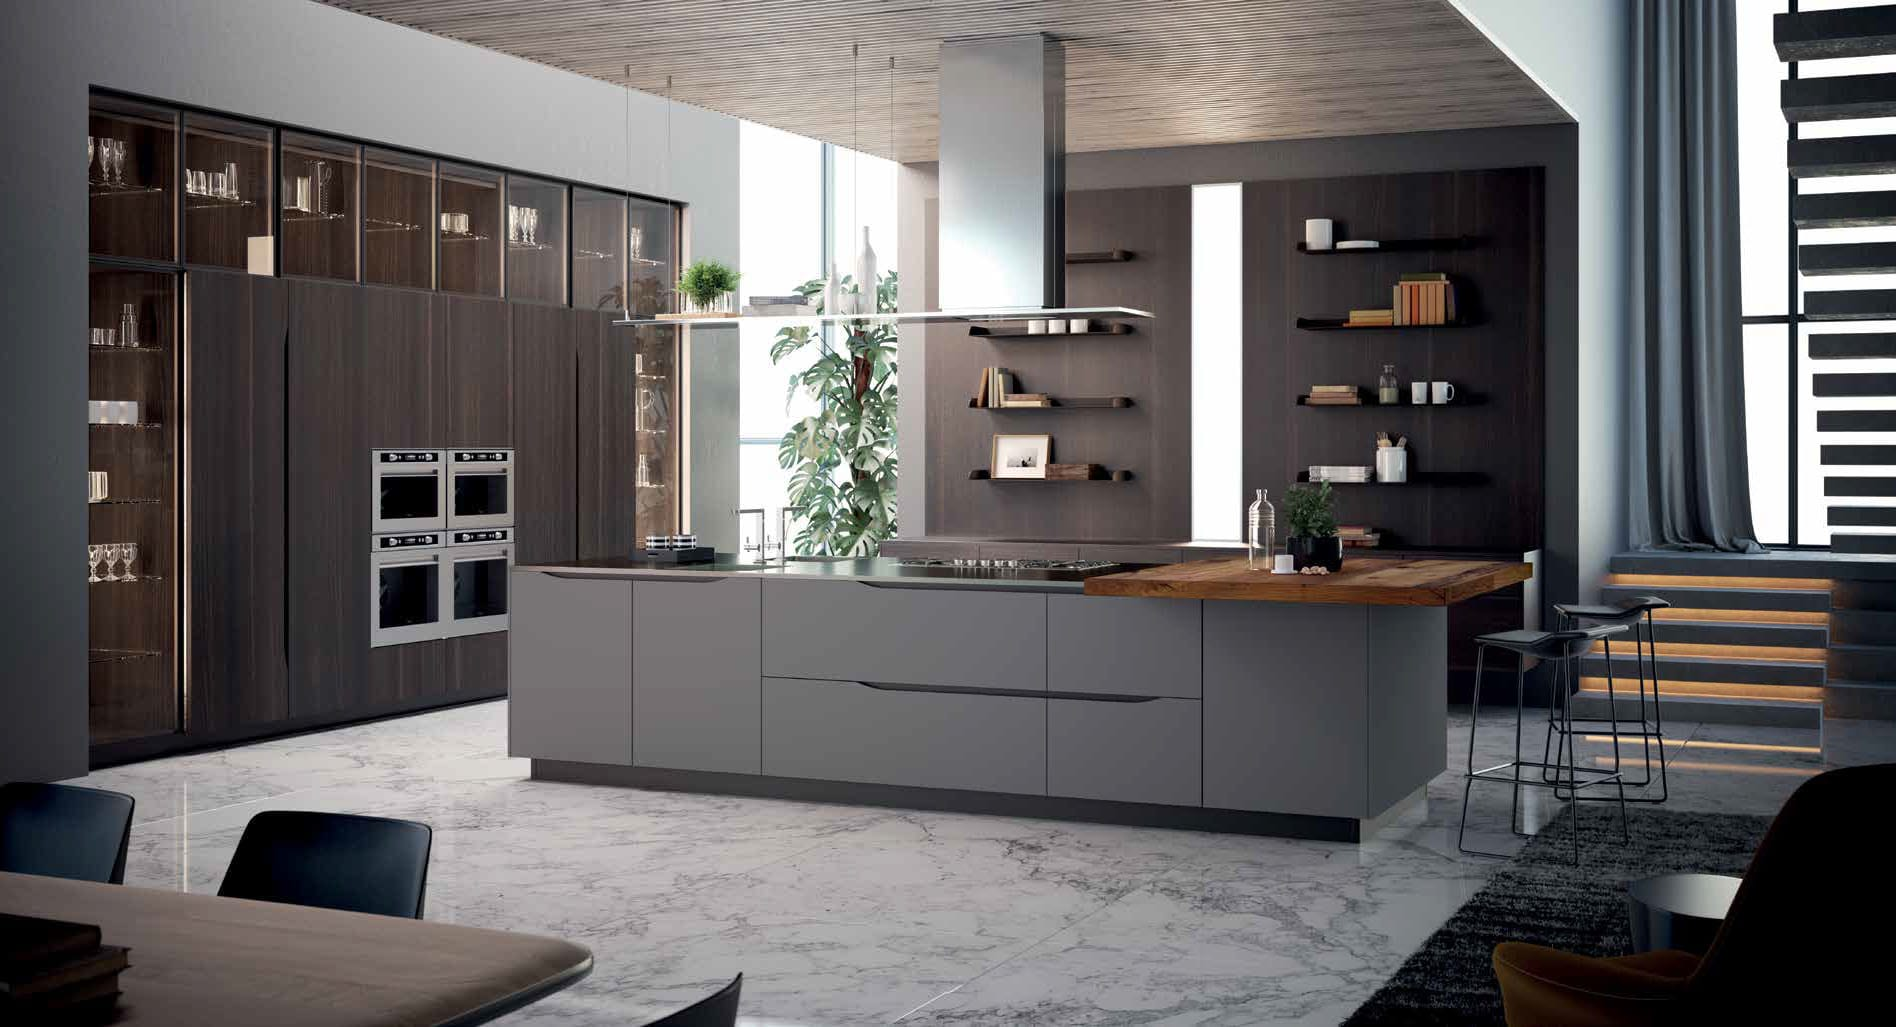 The distinguishing attribute of Miami is a new take on handle-less kitchen design. It's simplicity and grace is a definition of elegant beauty.